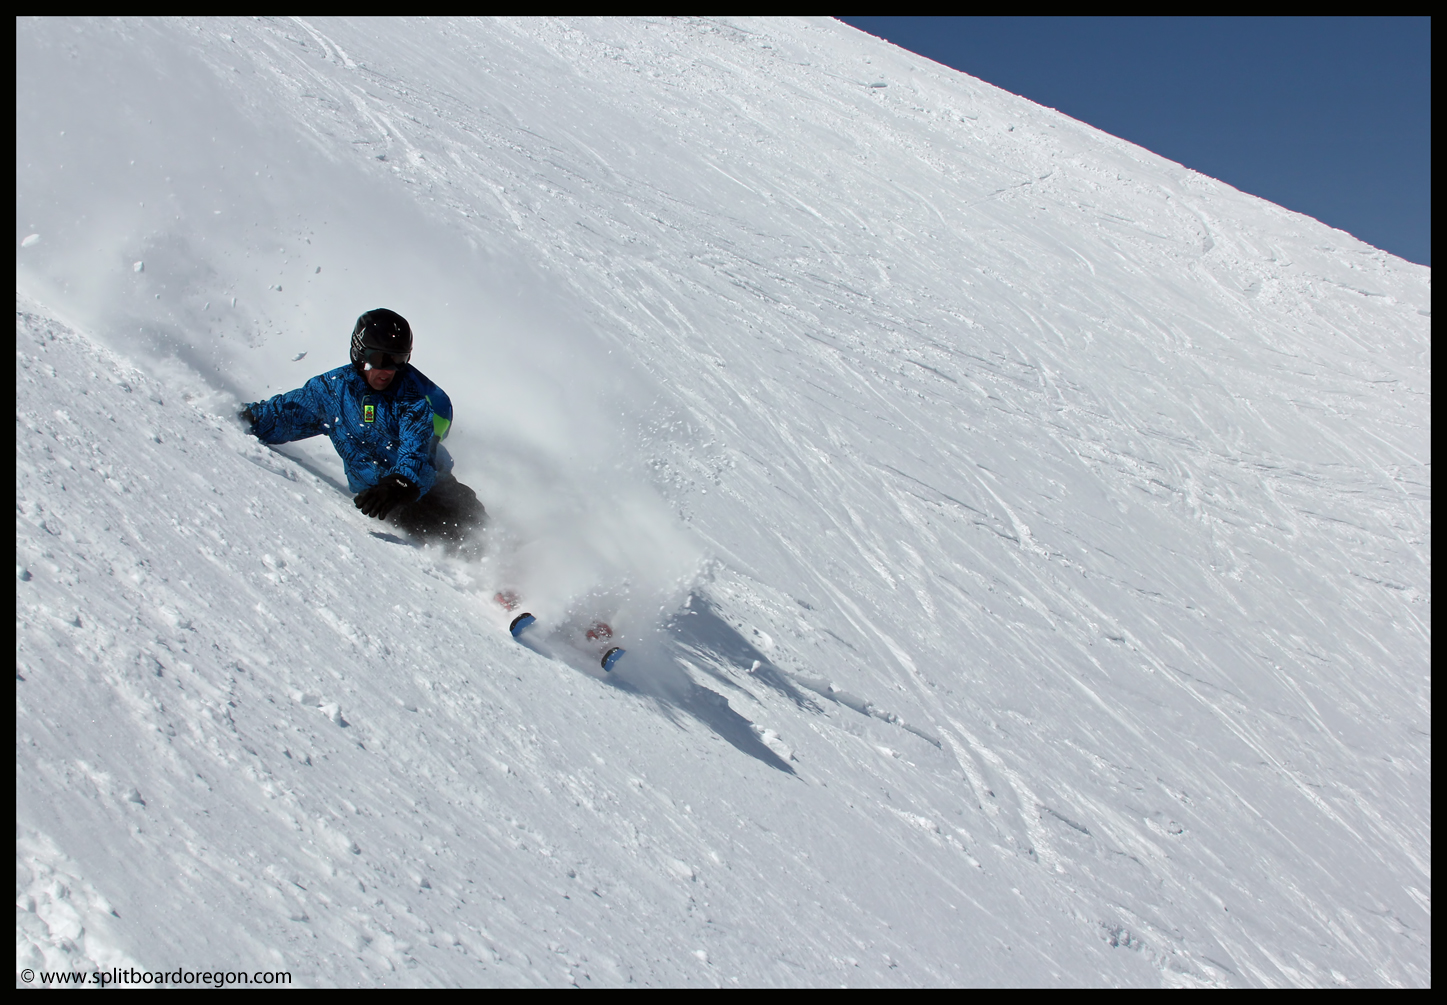 Slashing powder in the Cirque Bowl